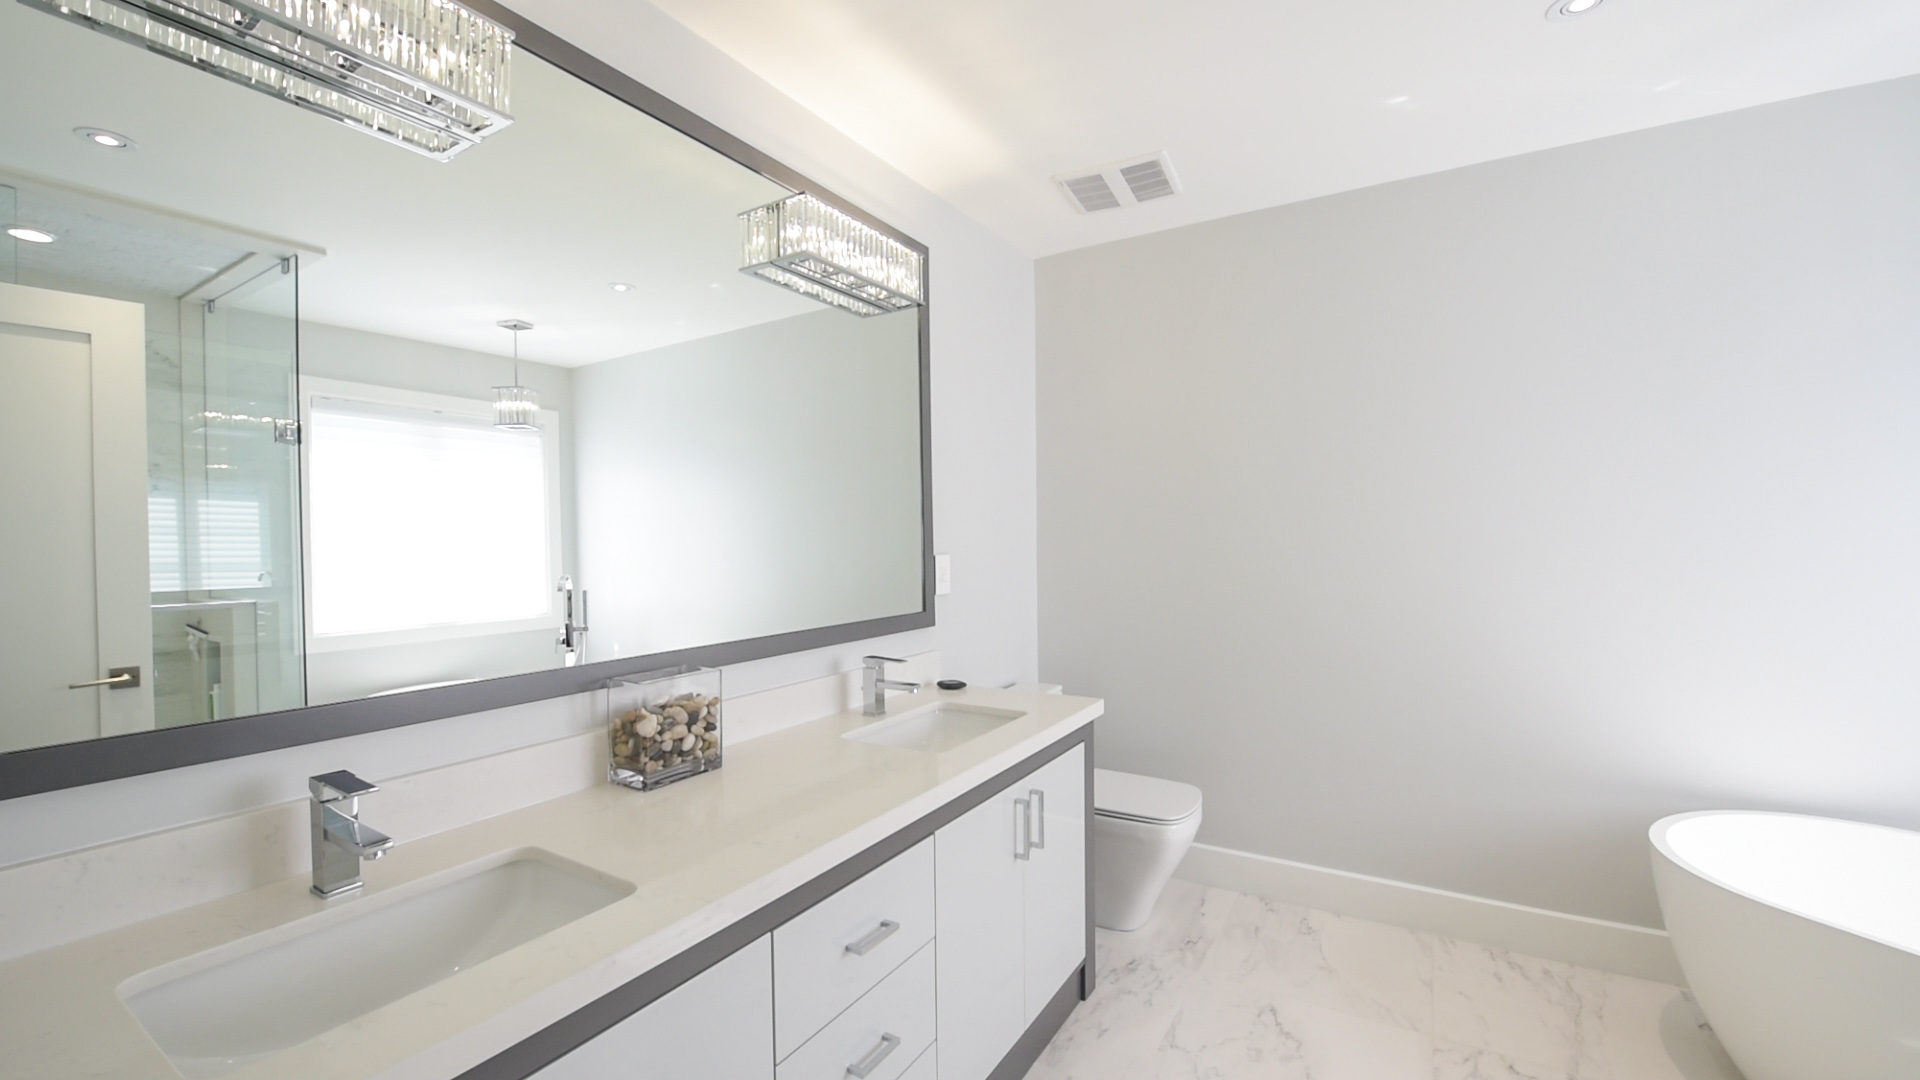 Classy 40 bathroom renovation jobs toronto inspiration of bathroom remodeling toronto Home decor jobs toronto